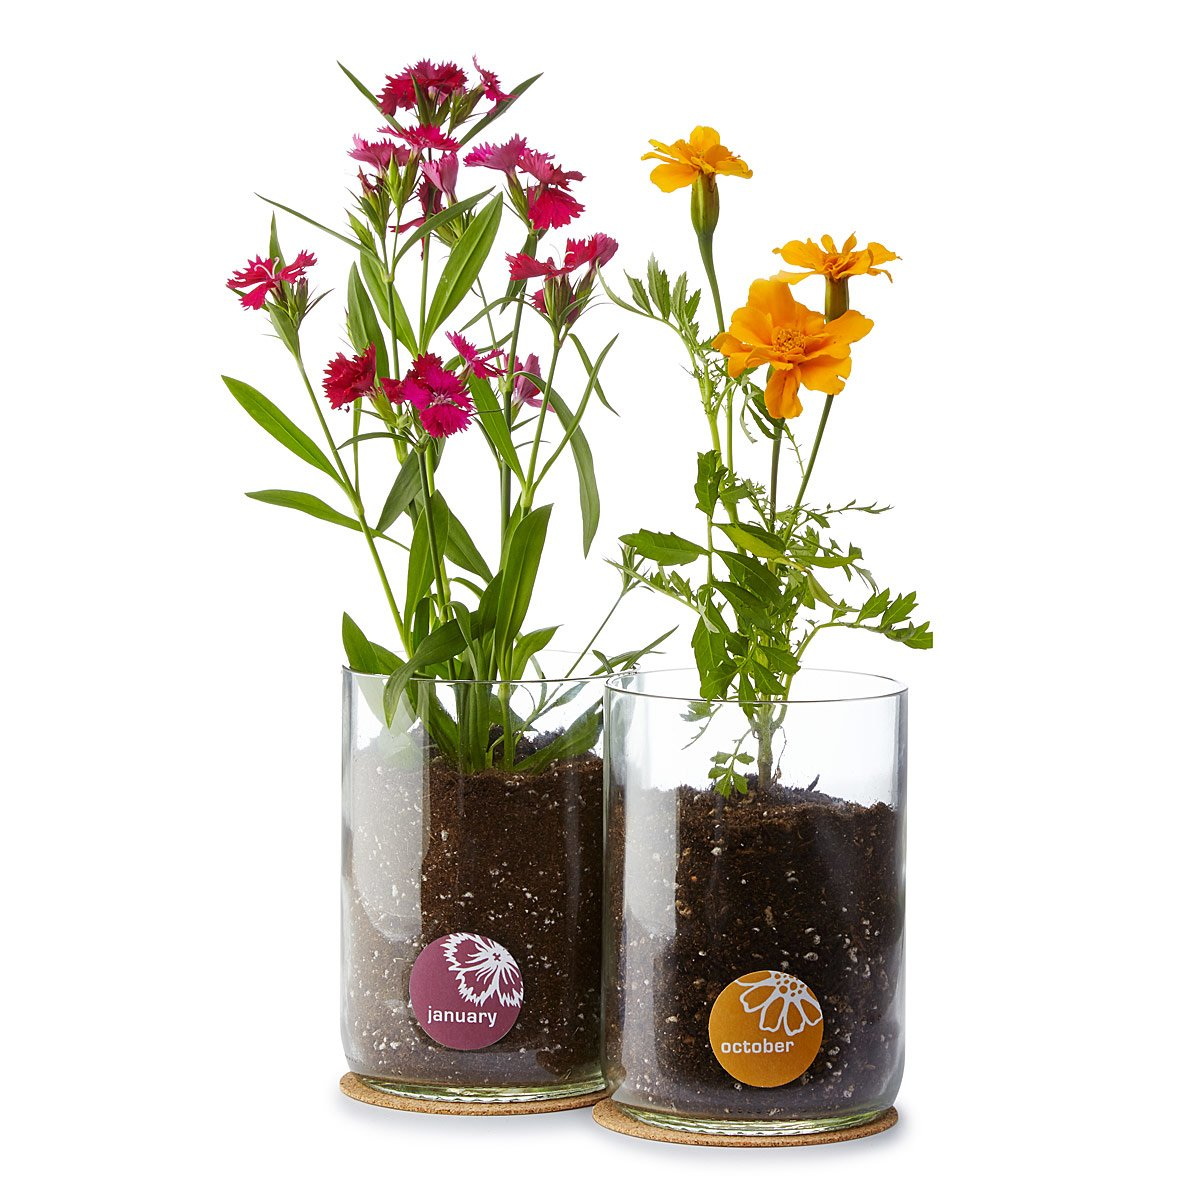 Our favorite gifts for everyone celebrating october birthdays the goods these diy flower kits come in flowers for all 12 months so grab the marigold version for your october birthday pal and theyll be growing in no time izmirmasajfo